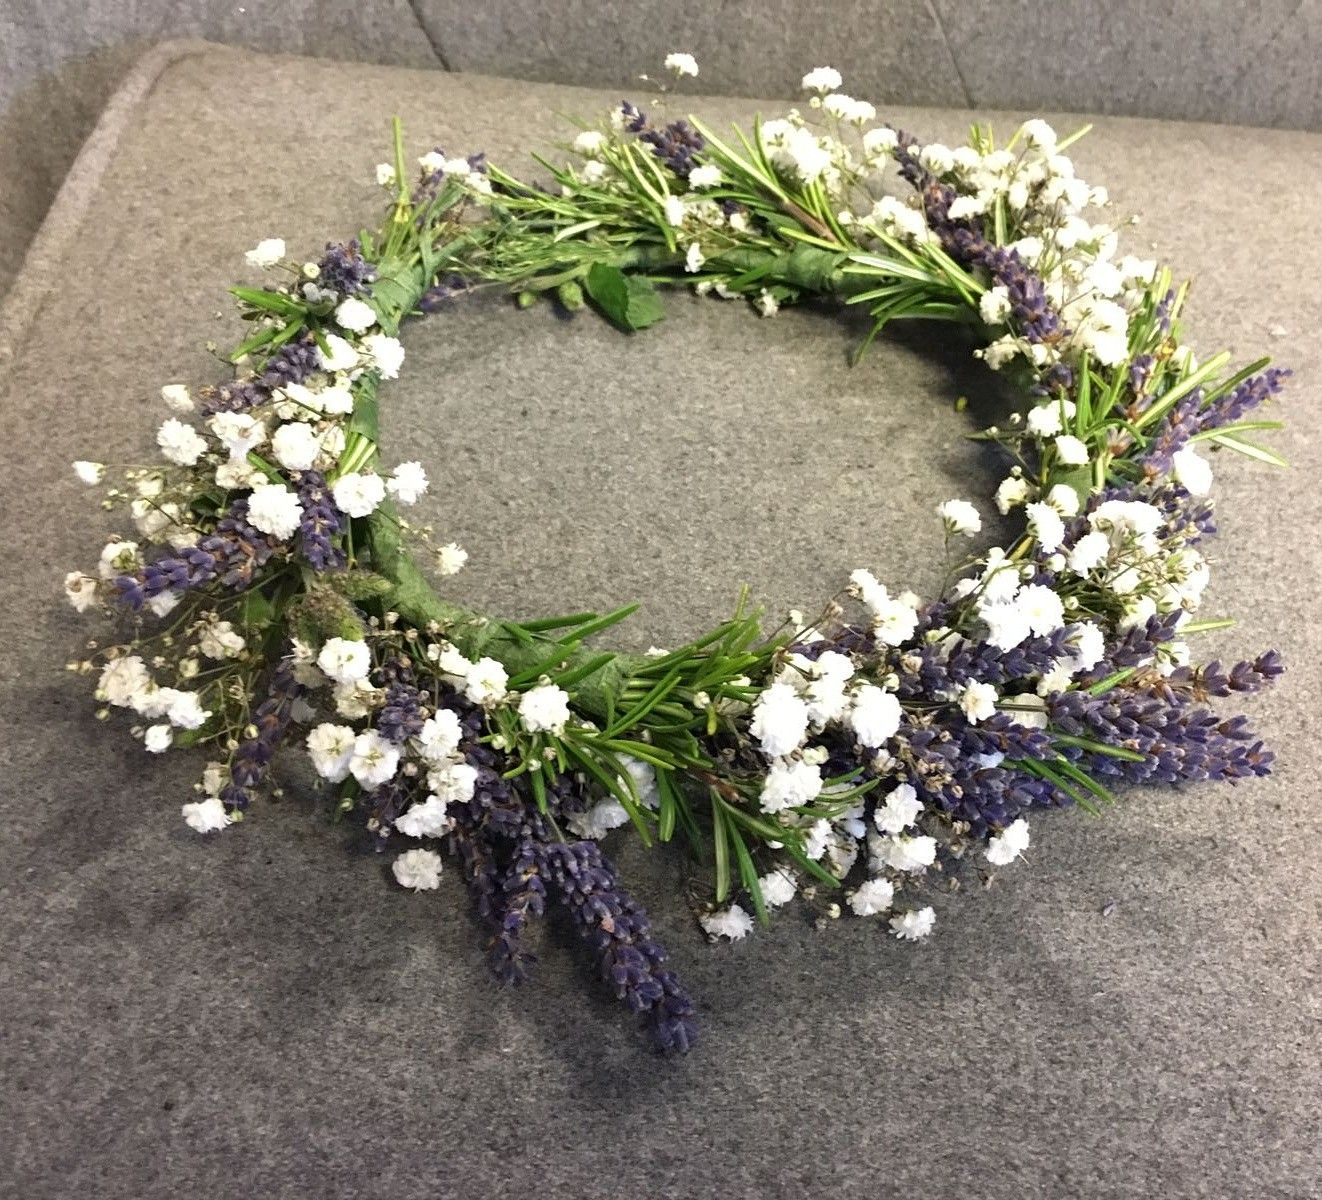 A Bespoke Floral Crown Made Of Fragrant Rosemary Dried Lavender And